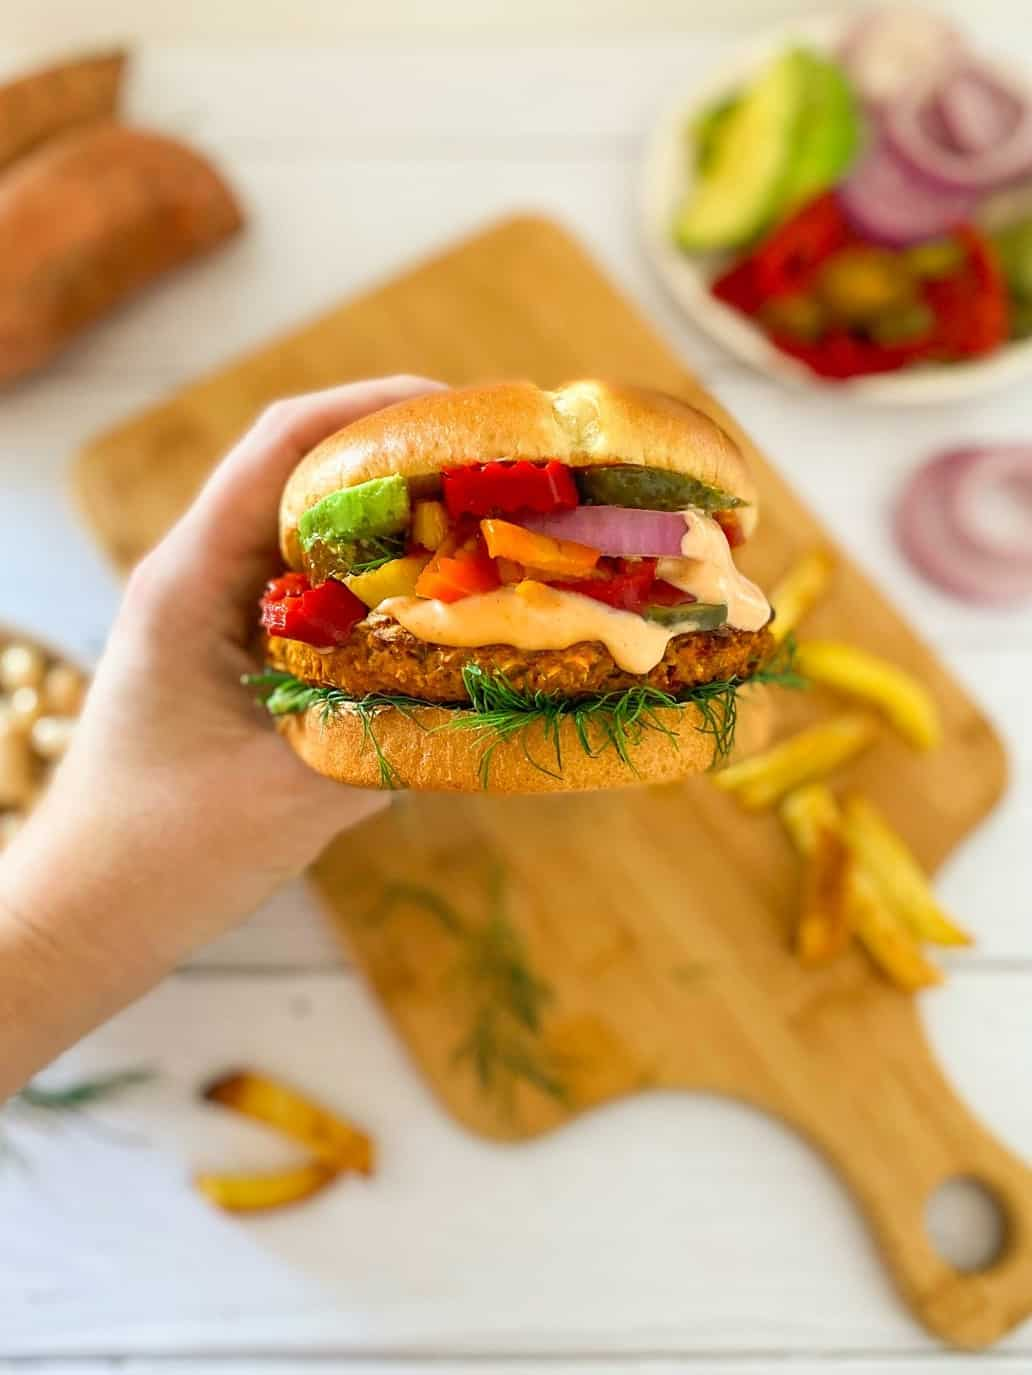 Hand holding vegan sweet potato burger in bun with onion, avocado, peppers and spicy mayo.